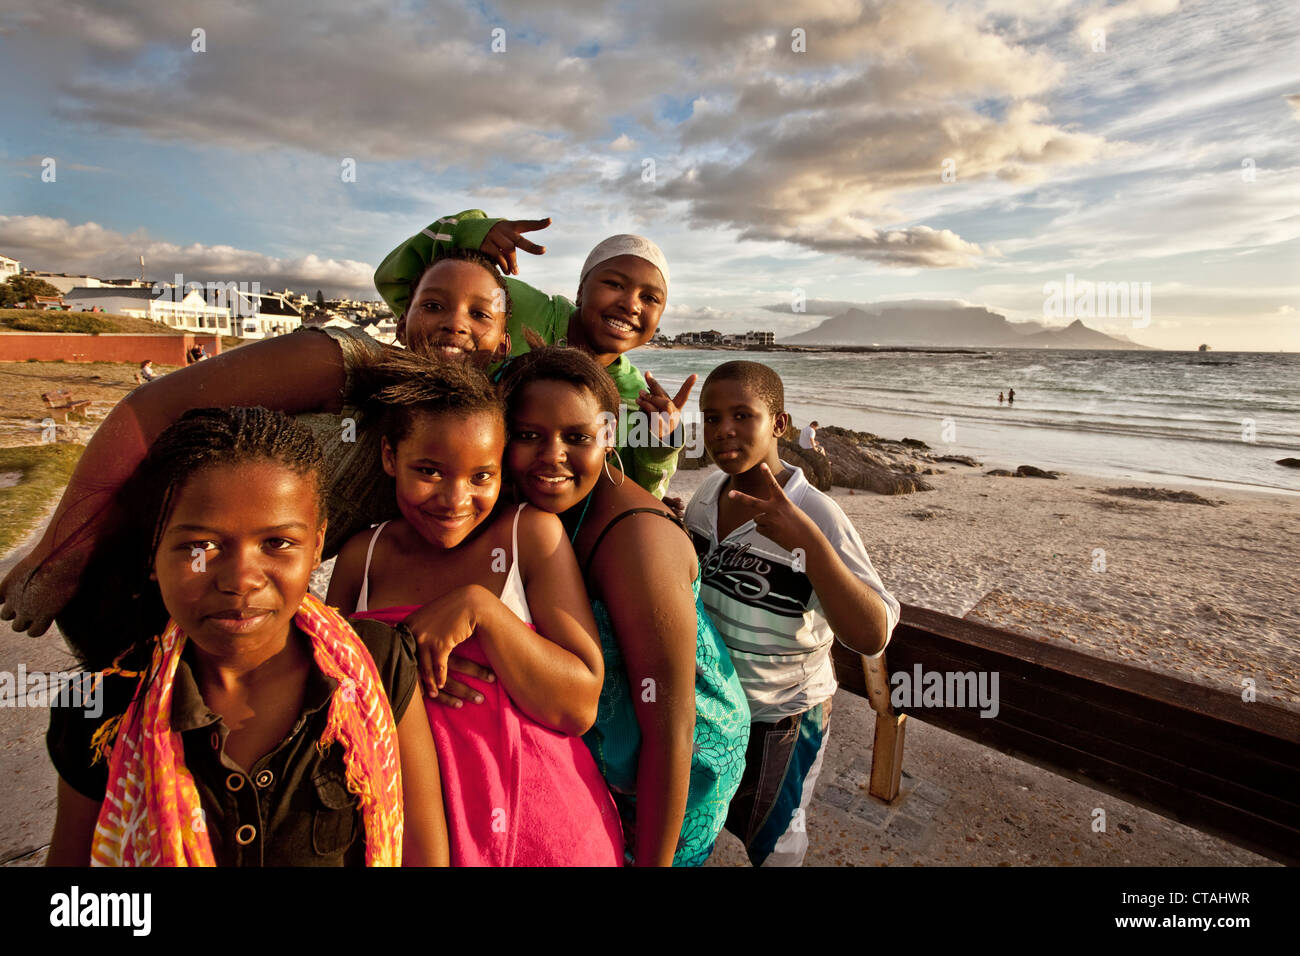 Beach impression with young coloured teenagers at Bloubergstrand, Cape Town, Western Cape, South Africa, RSA, Africa - Stock Image